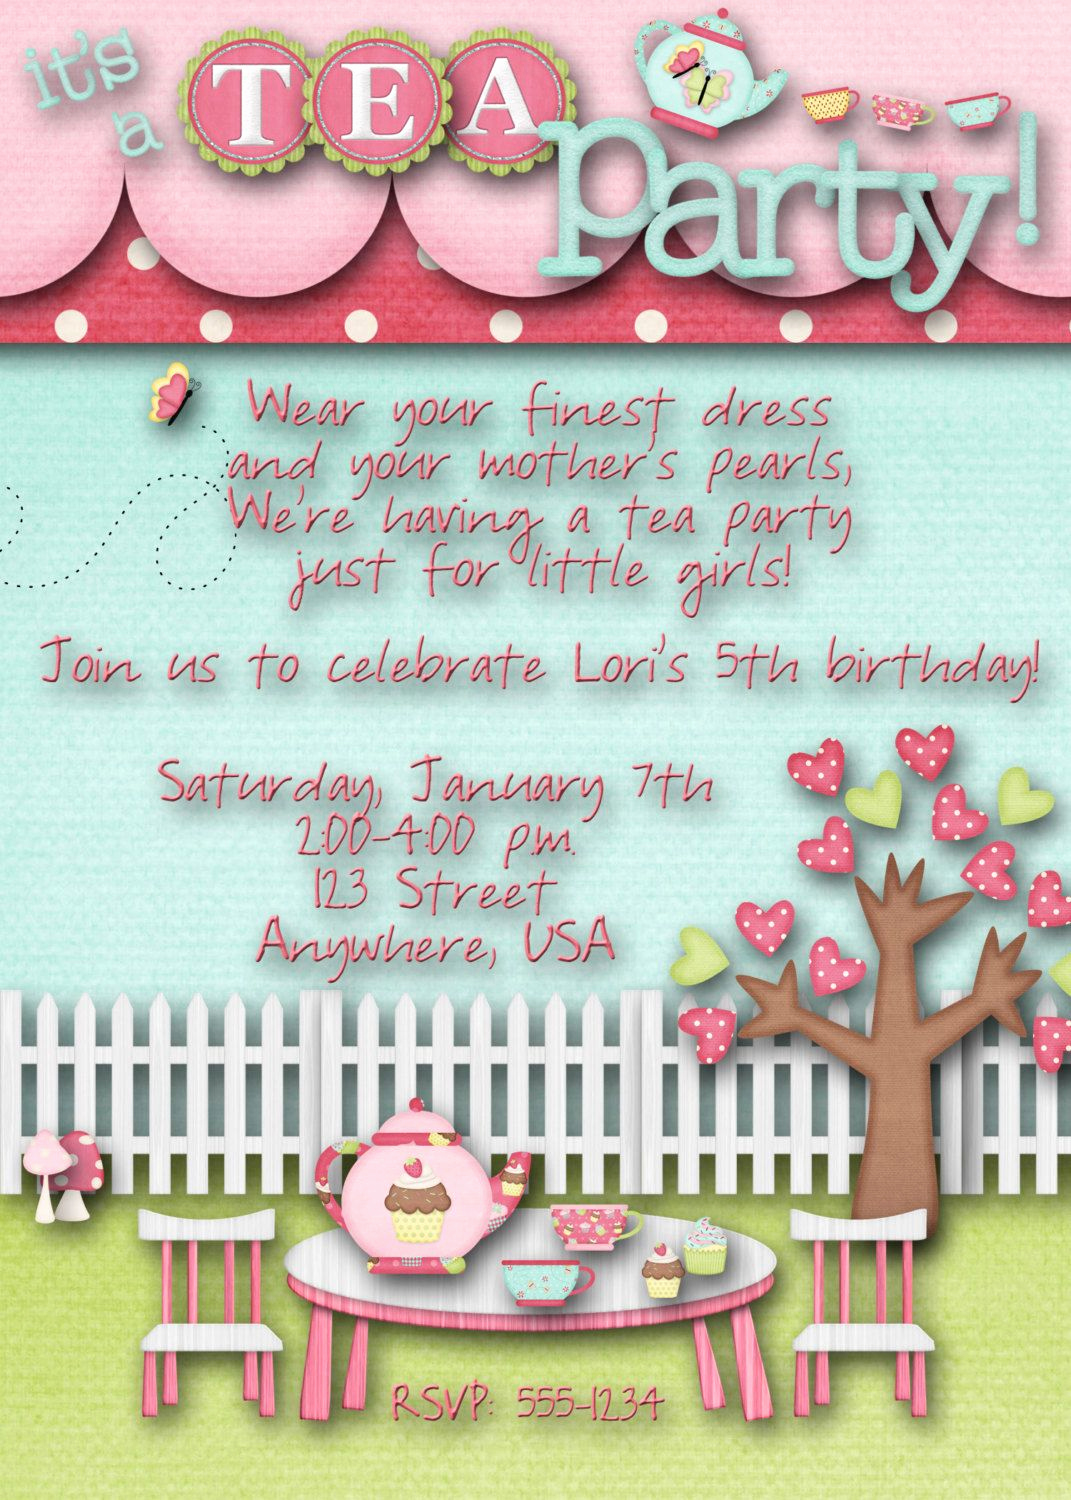 Tea Party Invitation Ideas Luxury Tea Party Birthday Party Invitation Emma S Birthday